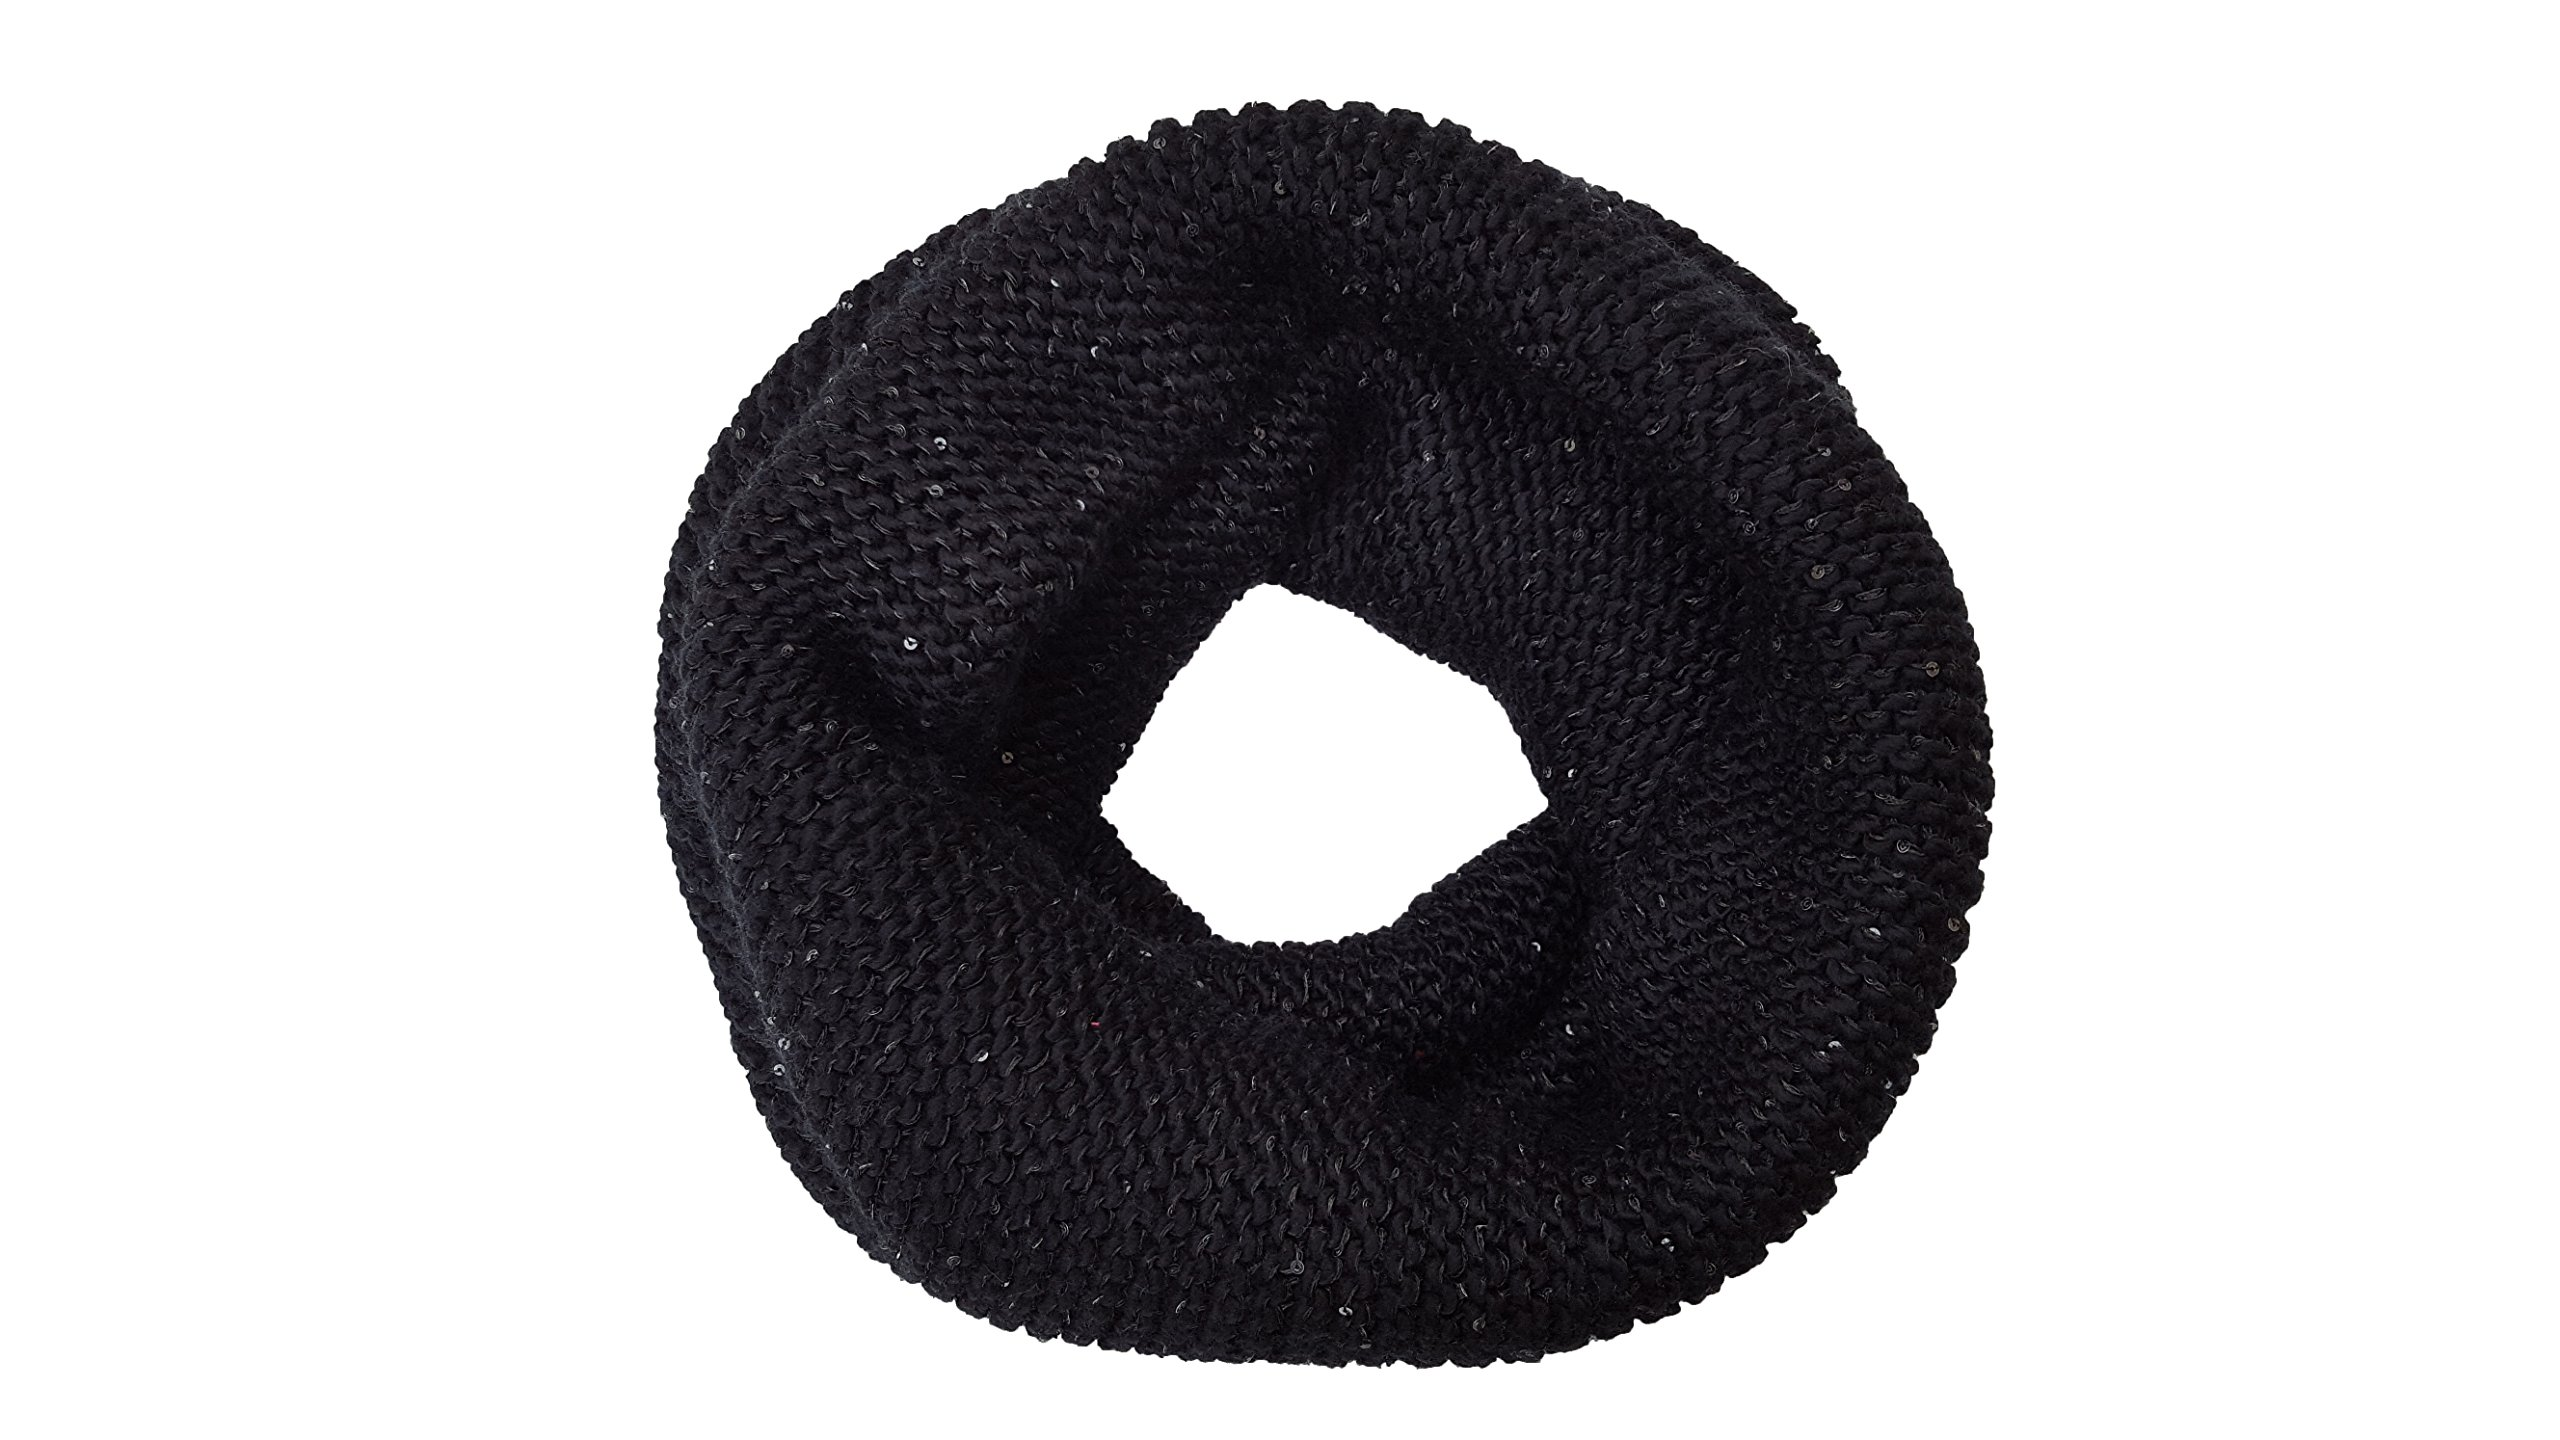 Kate Spade Sequin Knit Neckwarmer, Black by Kate Spade New York